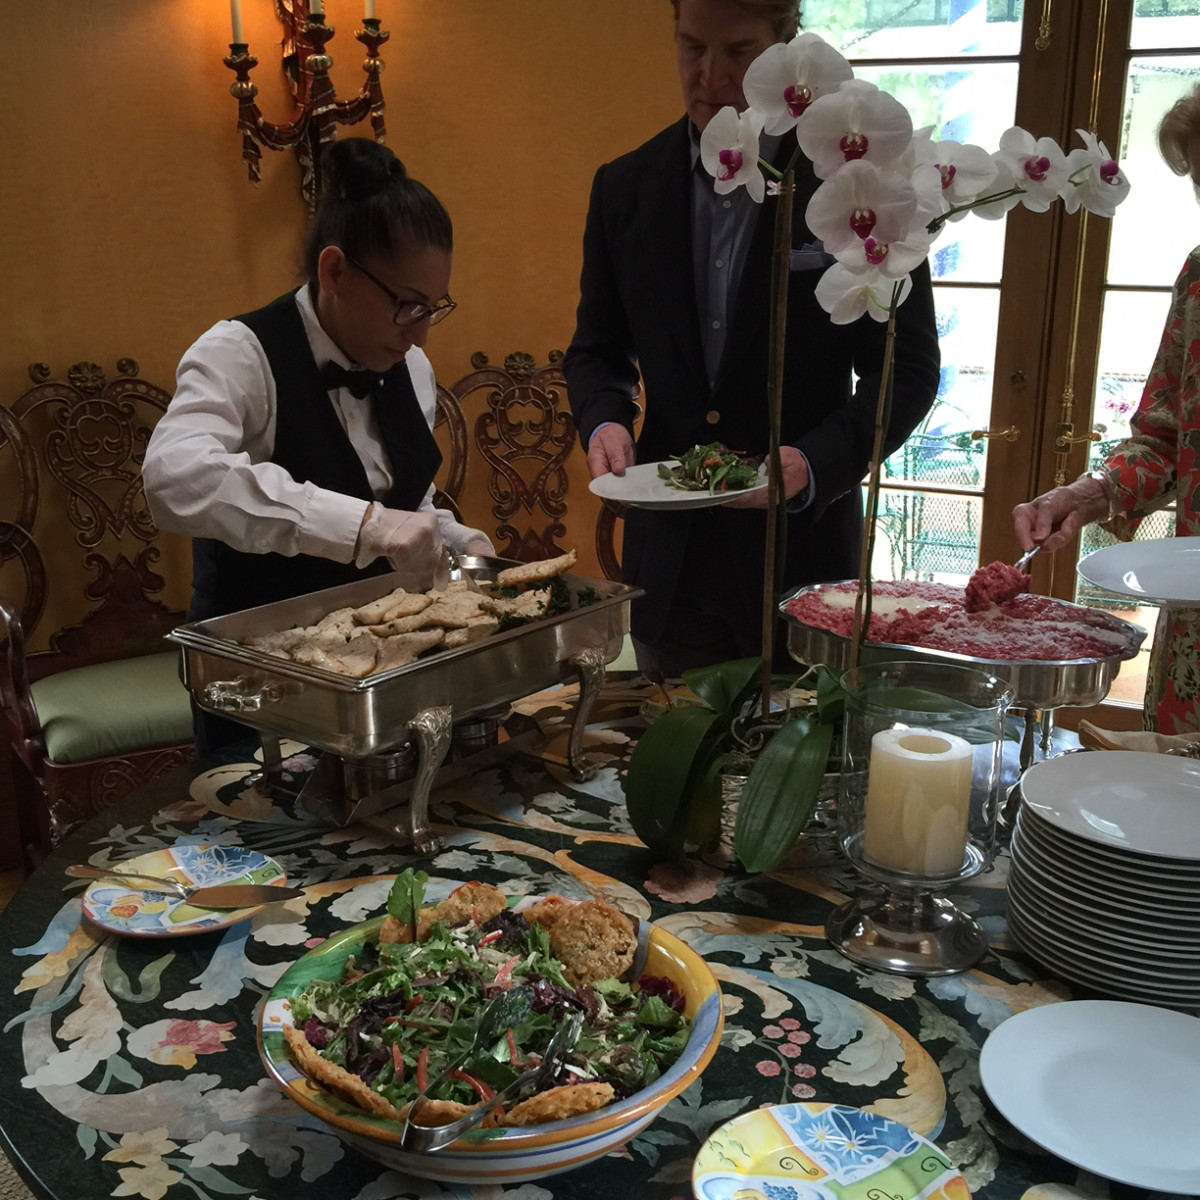 News, Shelby, Barbara Hines lunch on Venice, Oct. 2015, George Lancaster